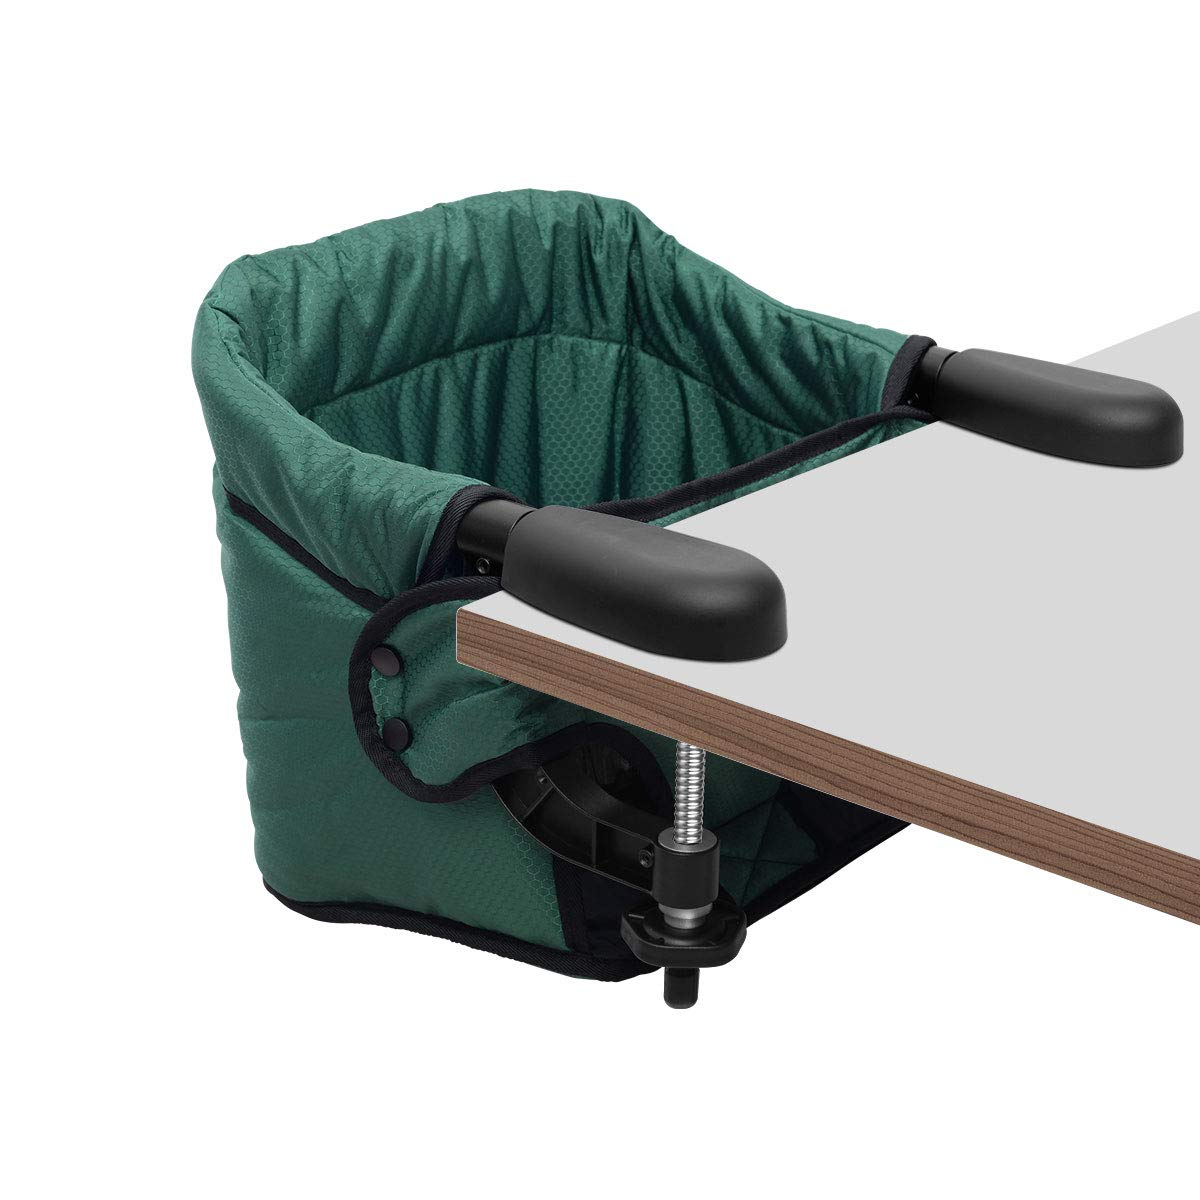 Hook On Chair, Safe and High Load Design, Fold-Flat Storage and Tight Fixing Clip on Table High Chair, Removable Seat Cushion, Attach to Fast Table Chair (Dark Green)